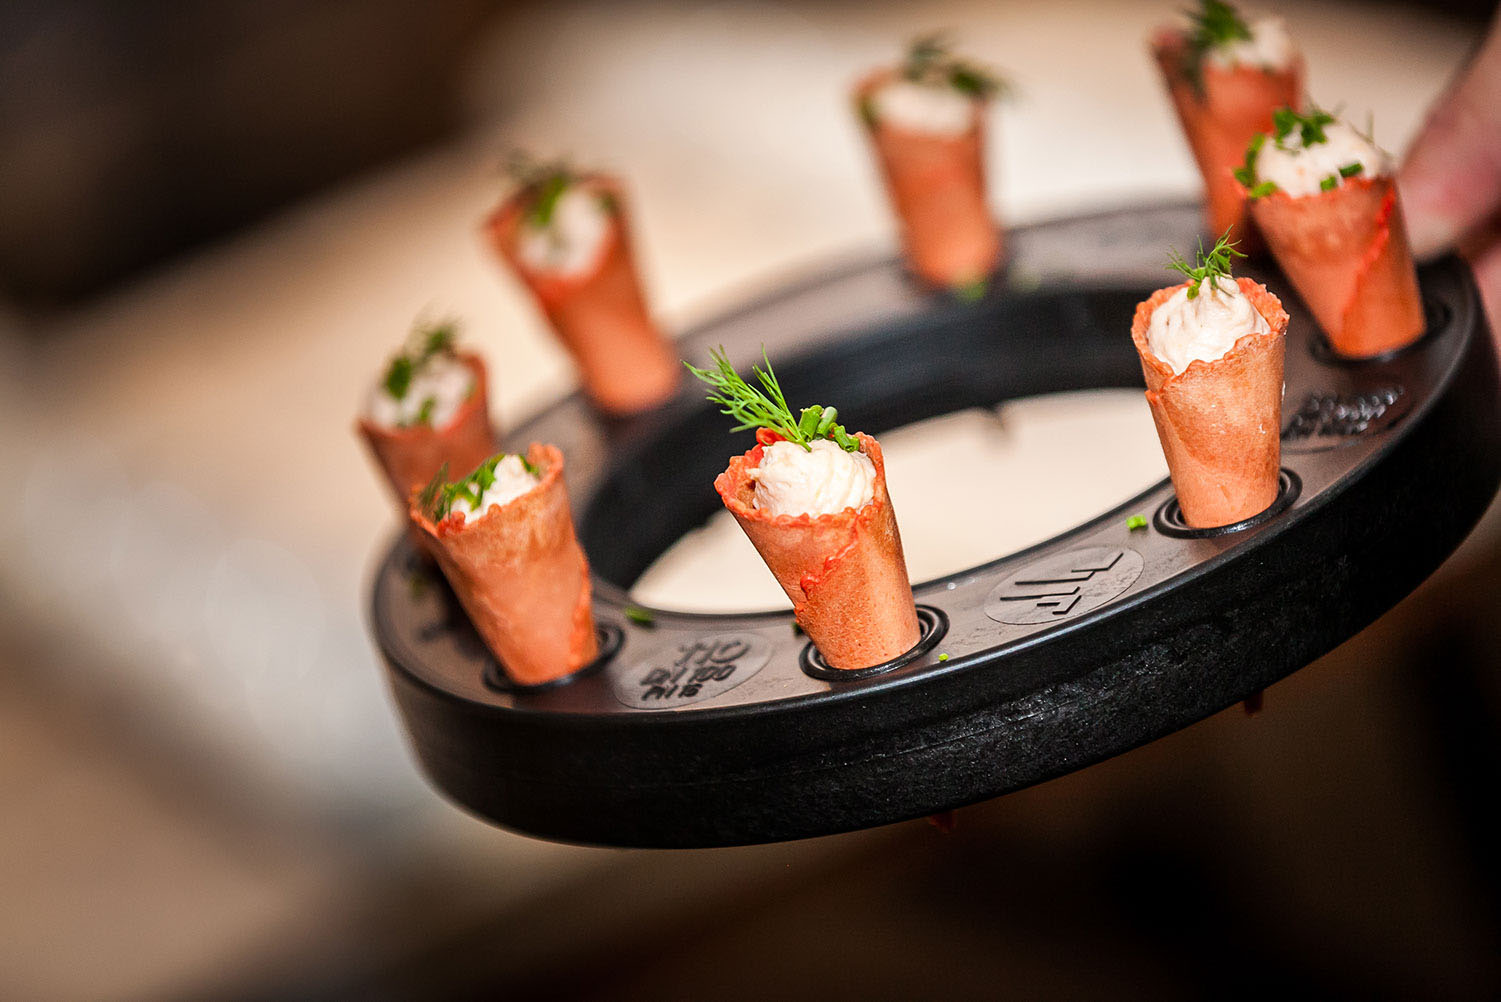 Productlancering catering